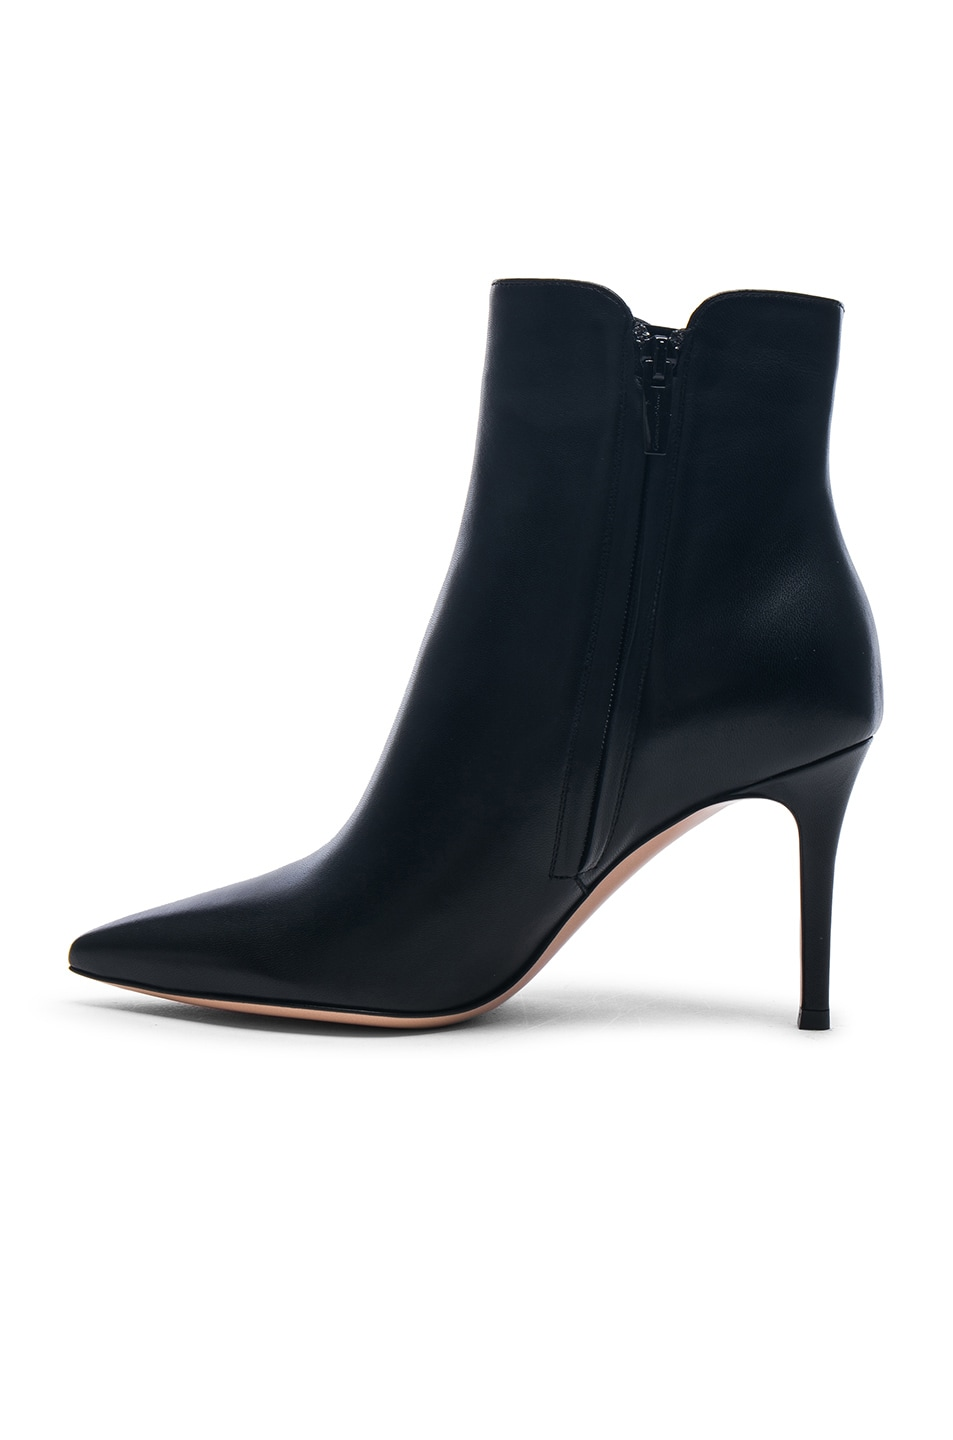 Image 5 of Gianvito Rossi Nappa Leather Levy 85 Ankle Boots in Black